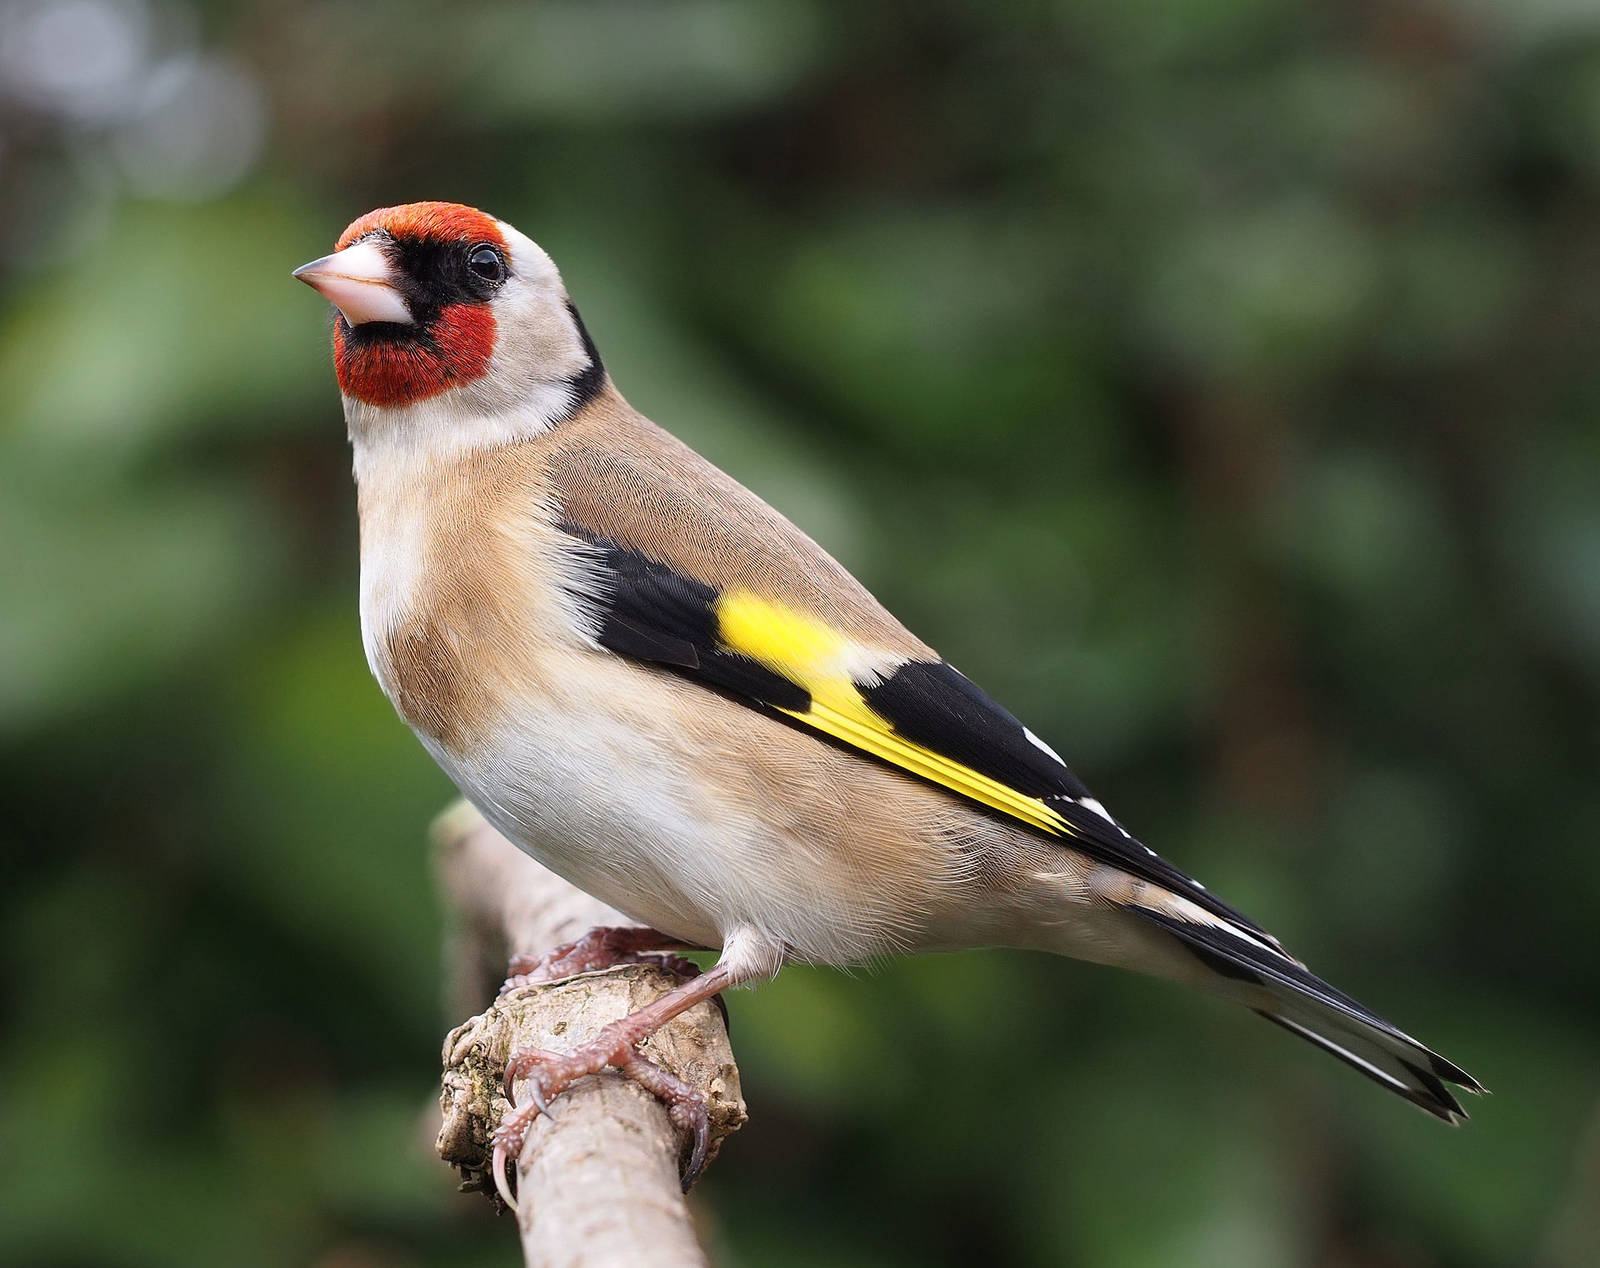 Carduelis_carduelis_close_up-1.jpg